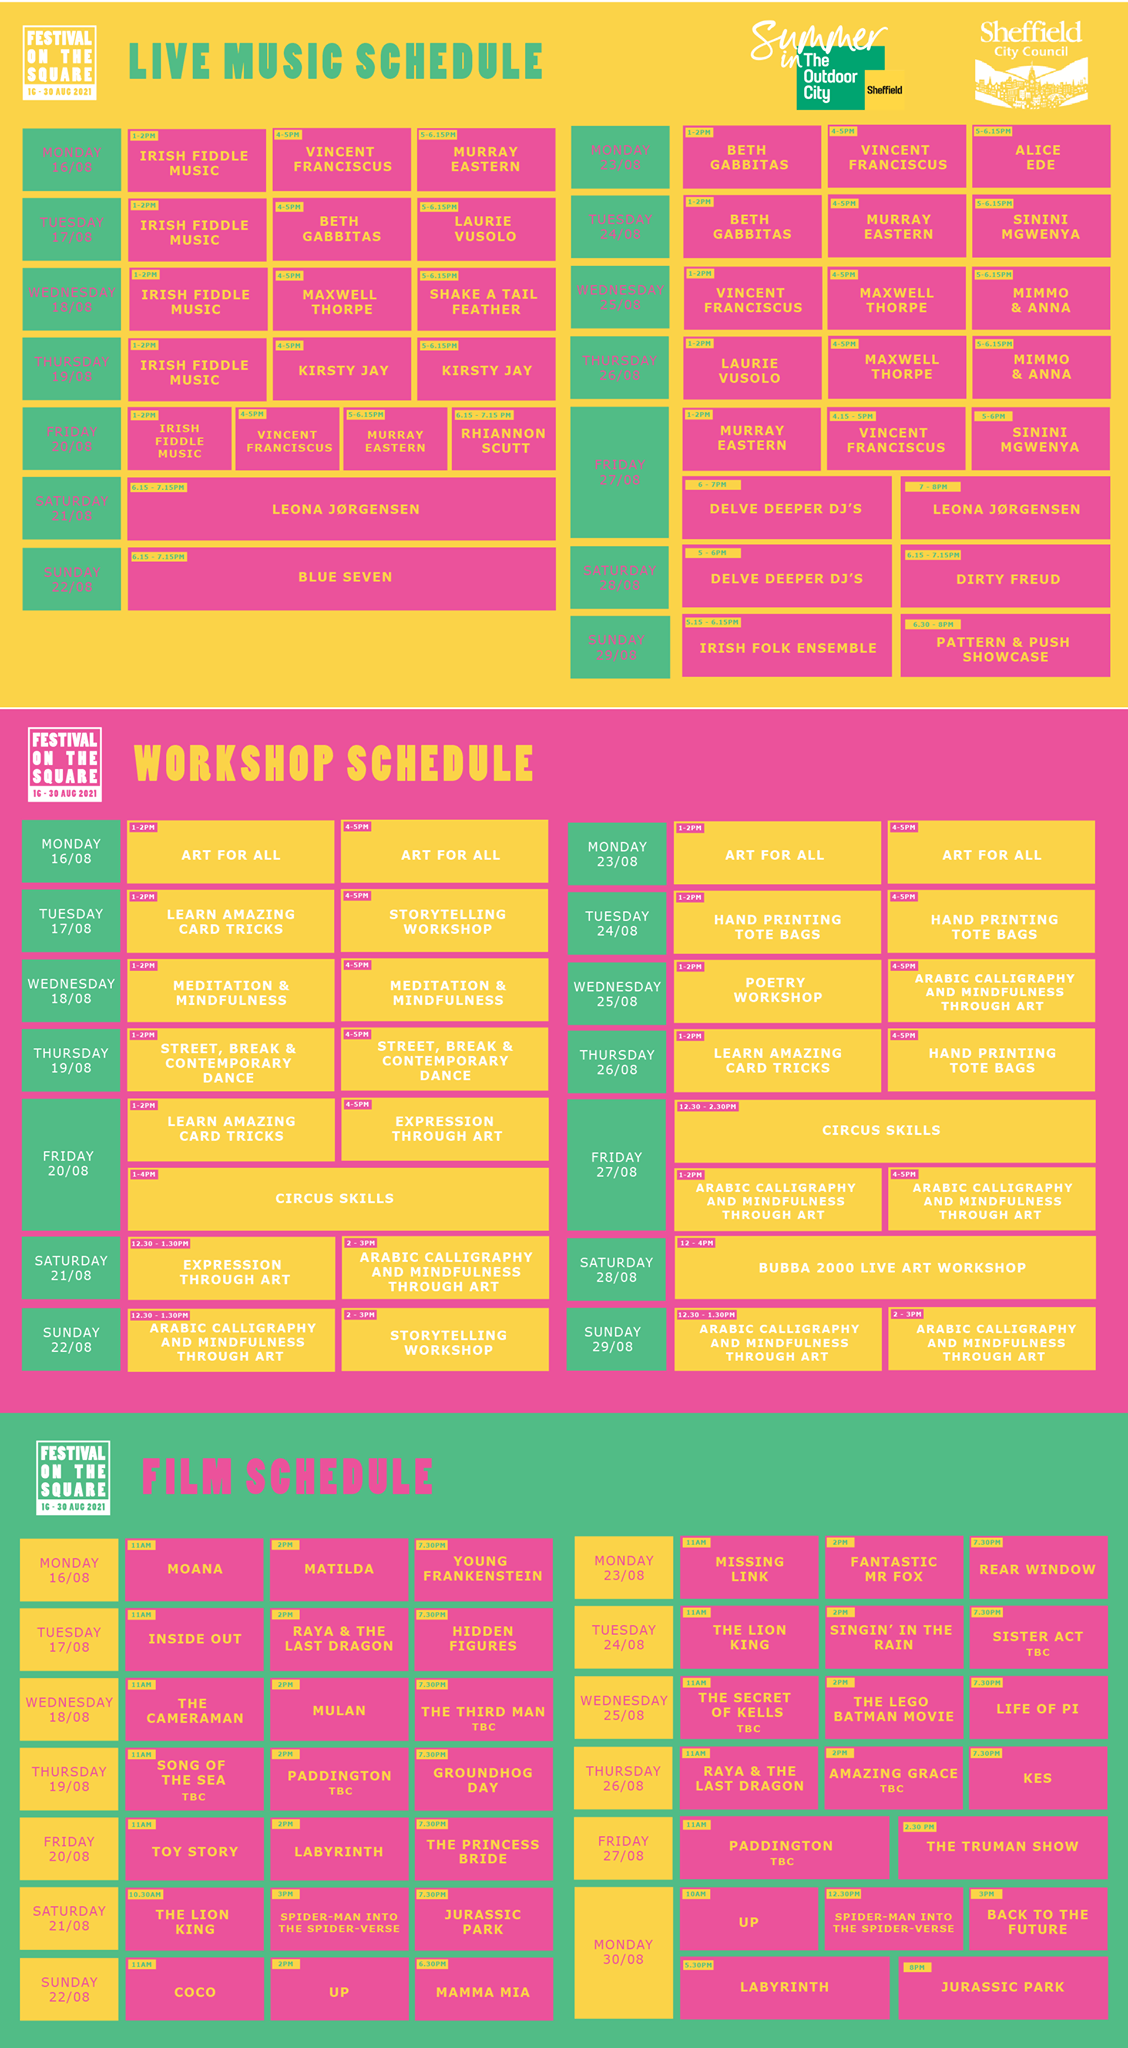 The lineup for the festival on the square in sheffield